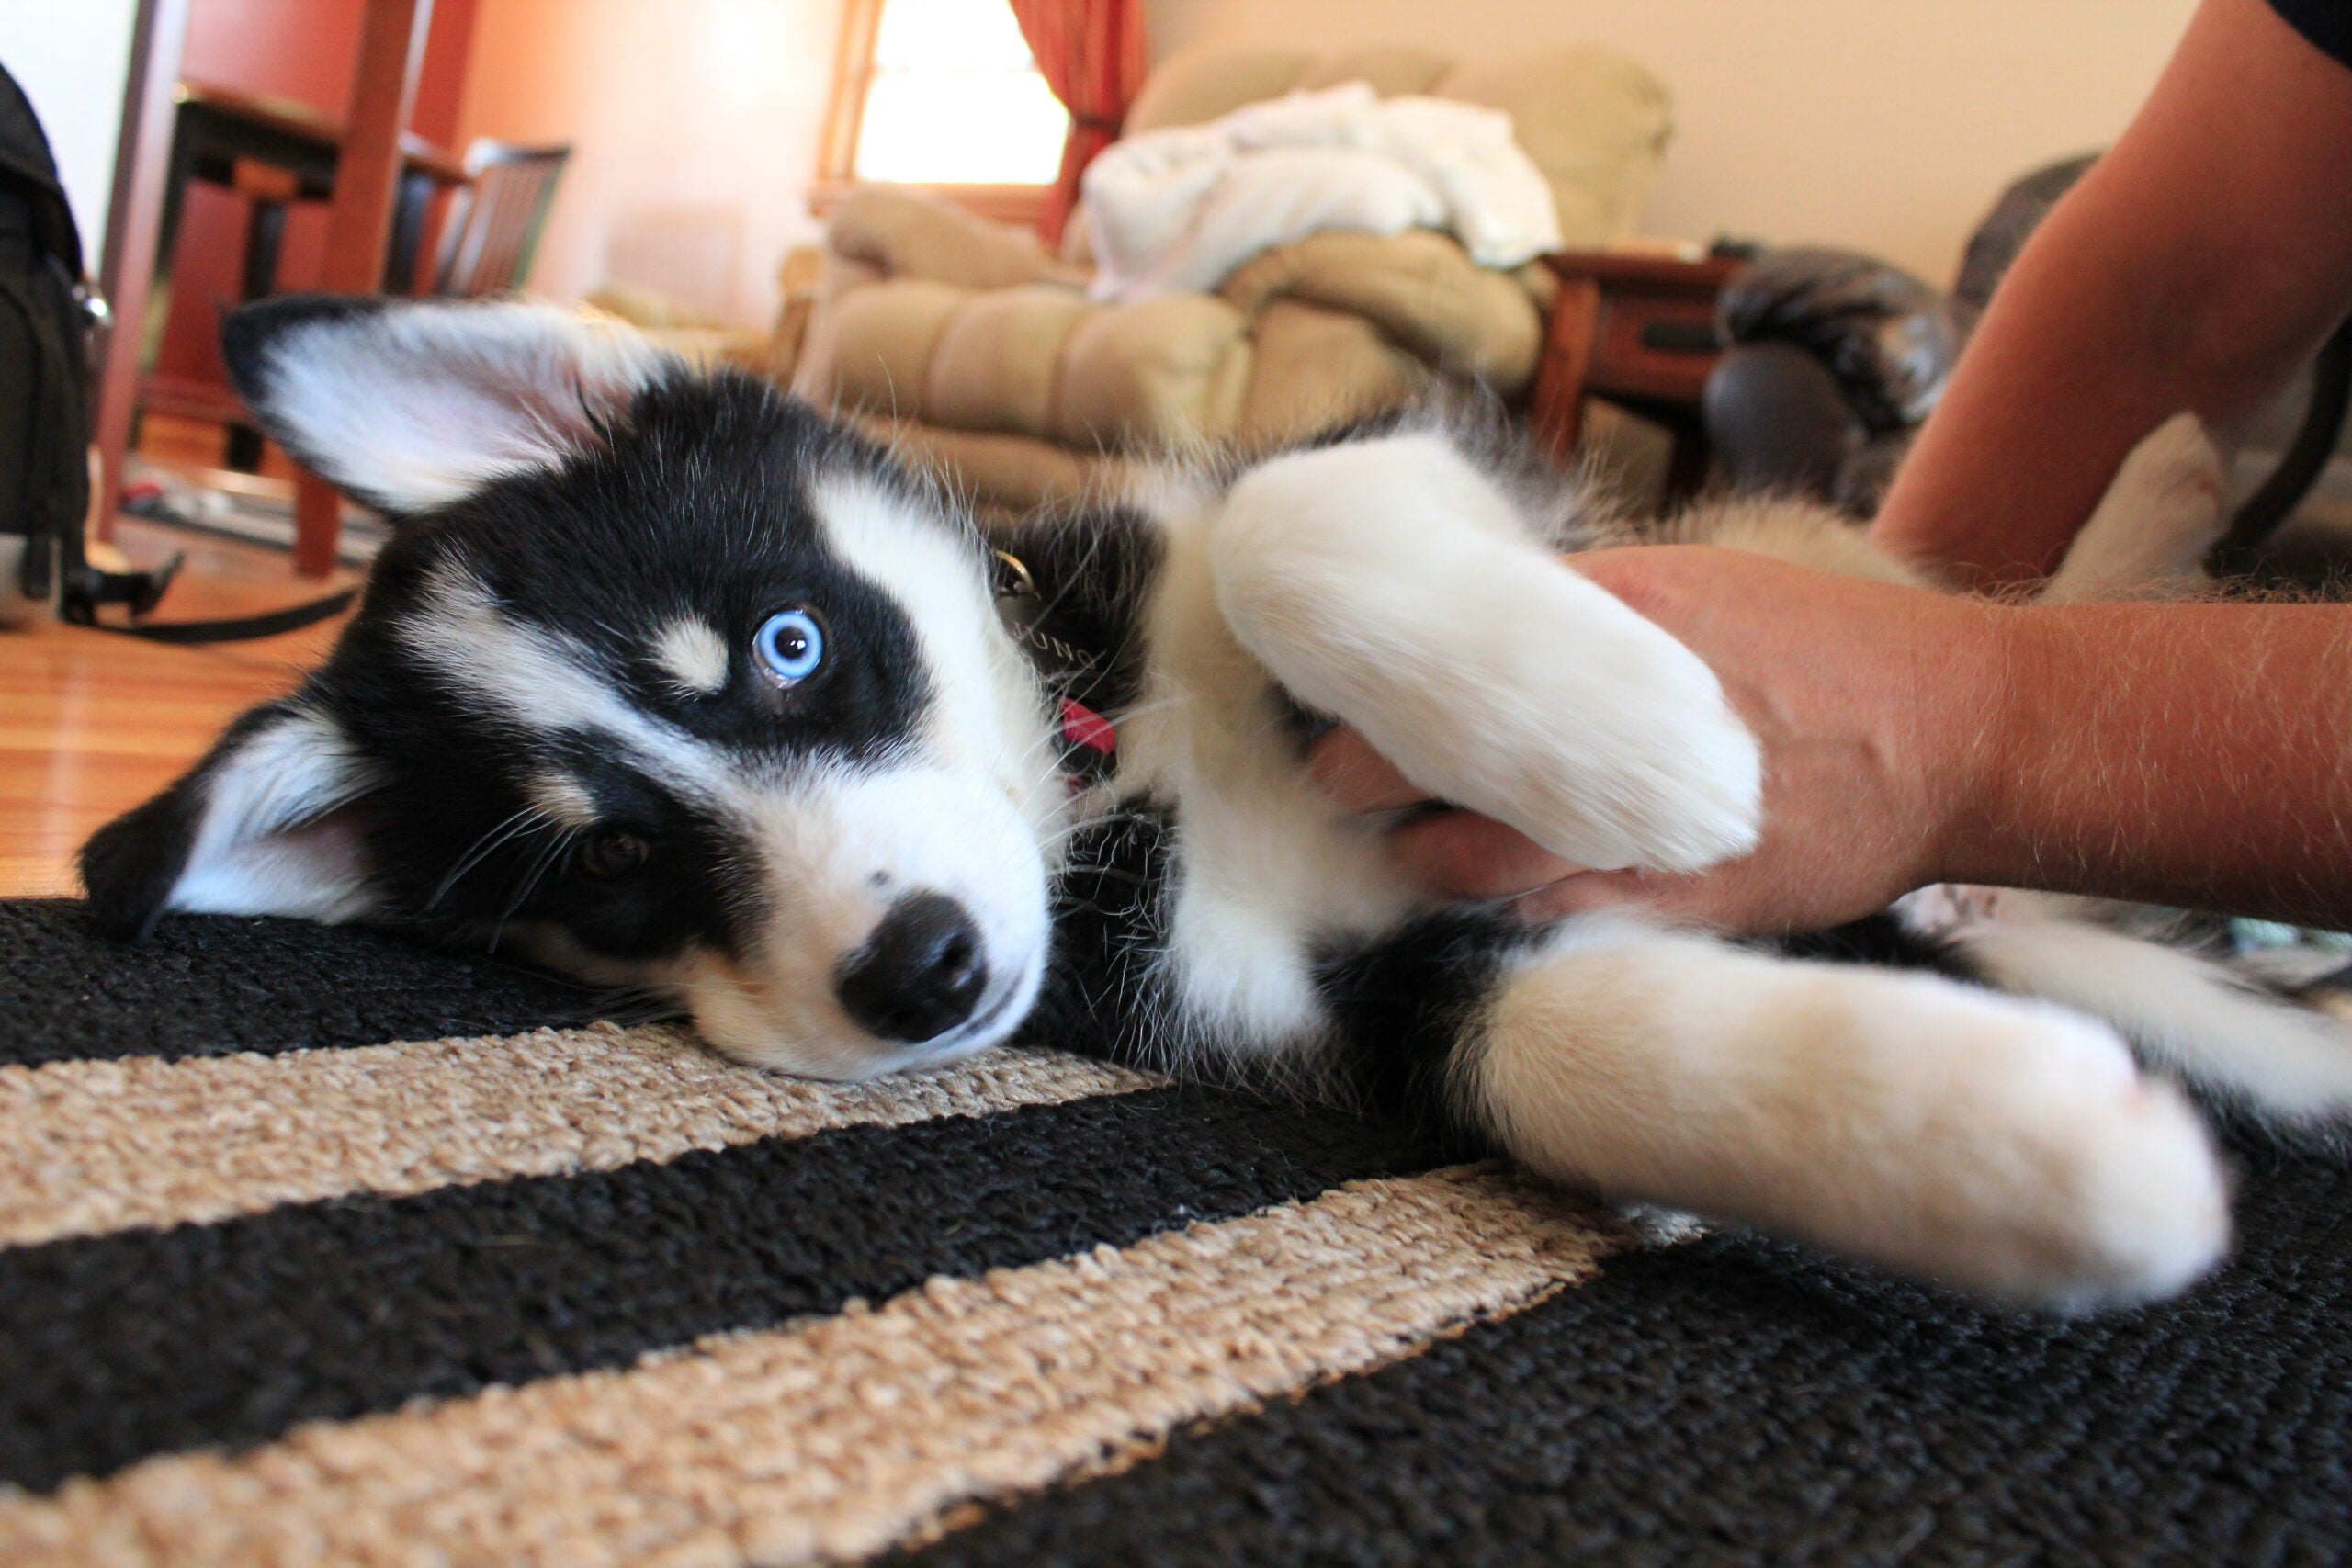 Why Does My Dog Kick When I Scratch His Belly?